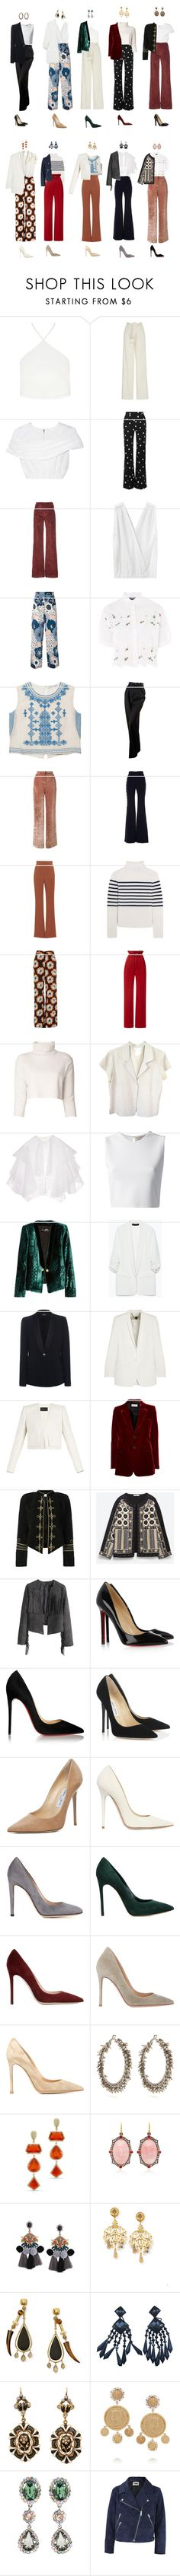 """you said they didnt shine"" by homeandhunnie ❤ liked on Polyvore featuring New Look, Johanna Ortiz, Delpozo, Monse, Isa Arfen, Band of Outsiders, Chloé, Topshop, Chelsea Flower and Chanel"